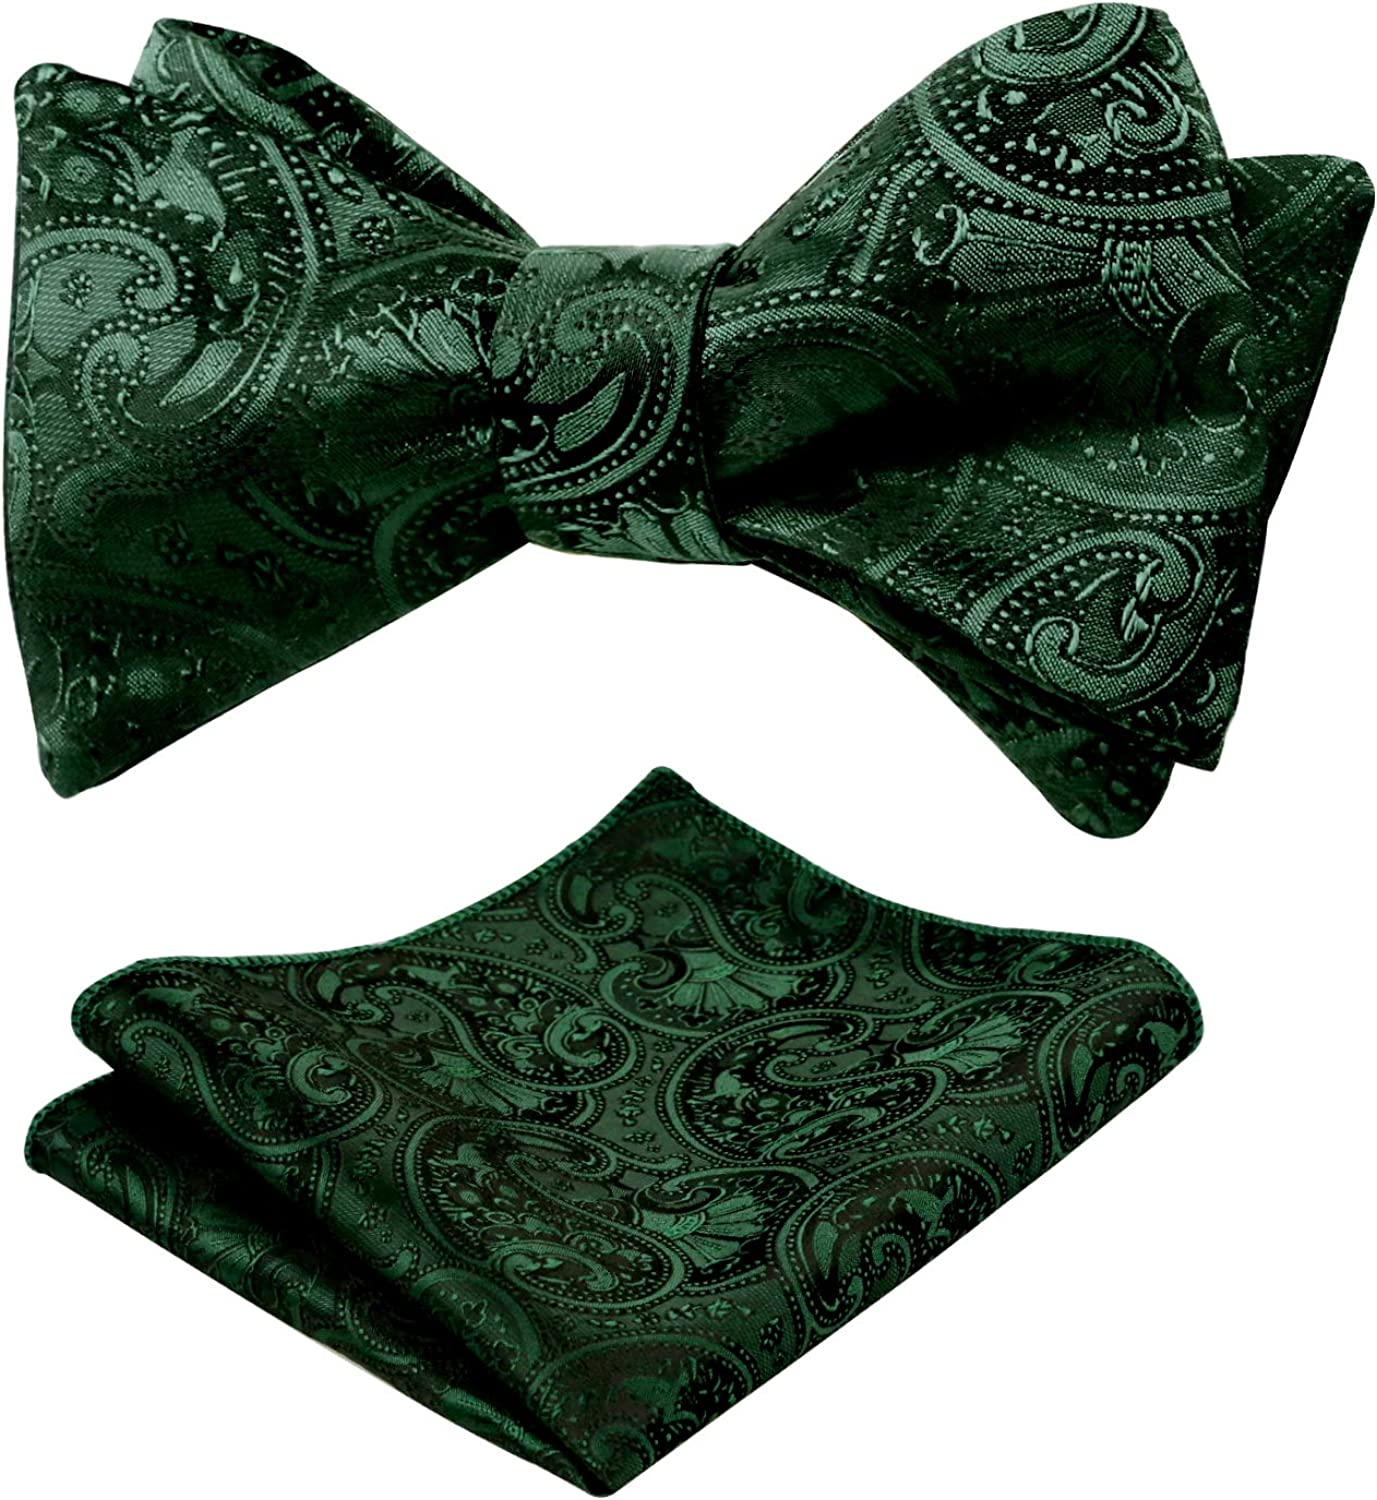 Alizeal Mens Paisley Floral Jacquard Untied Bowtie and Pocket Square Set